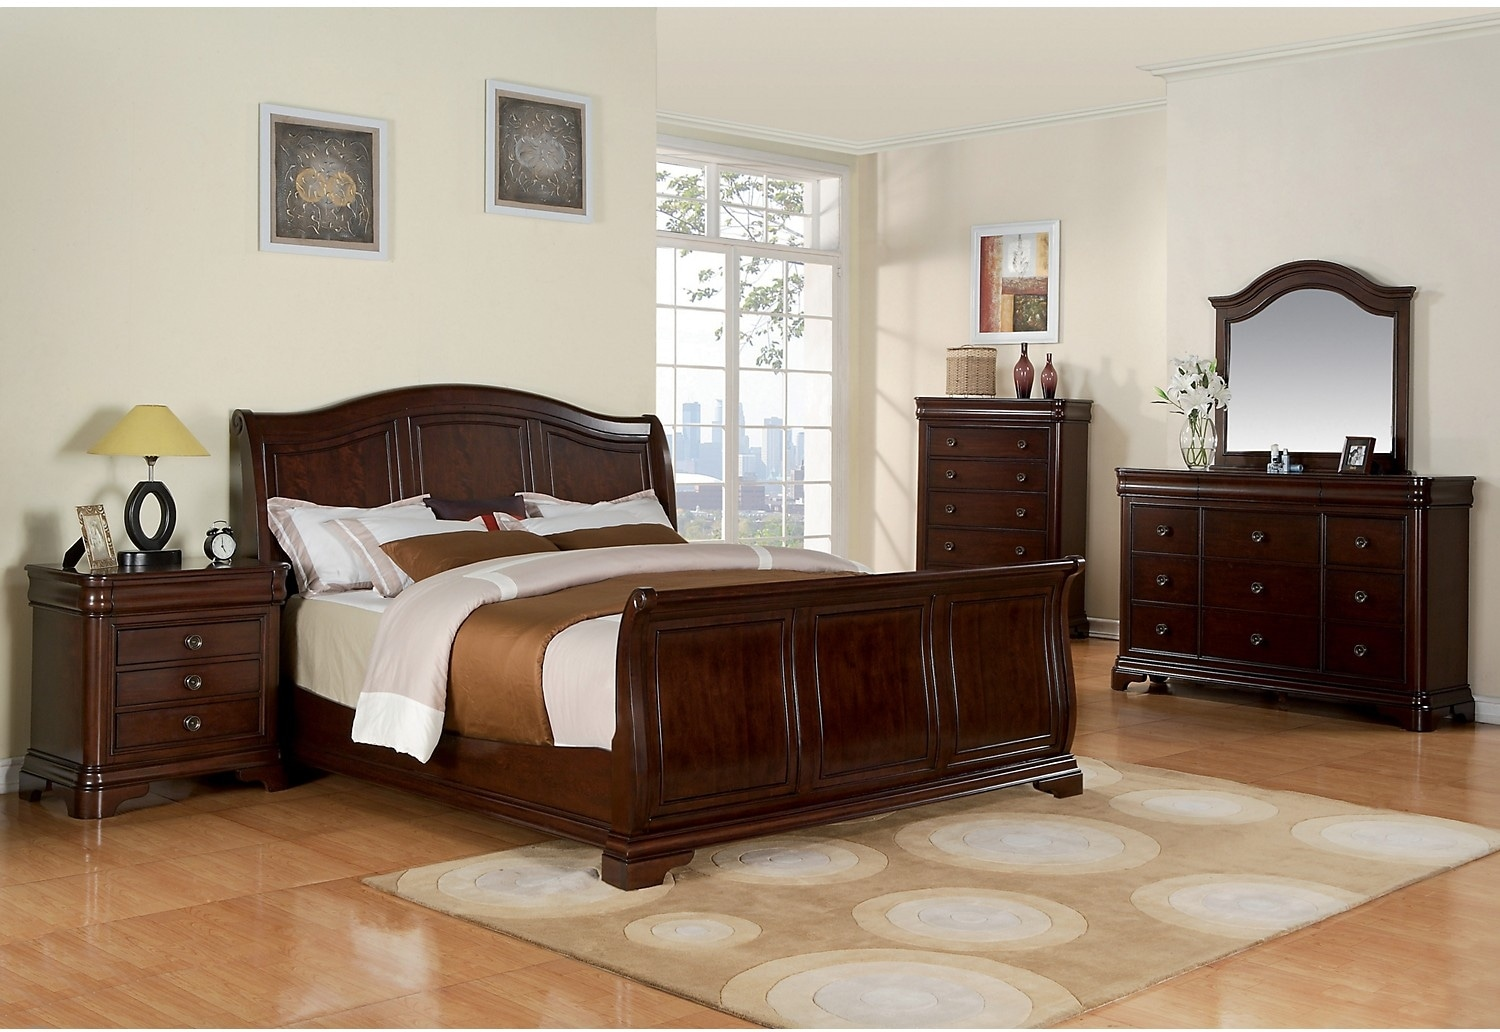 Bedroom Furniture - Cameron 5-Piece Queen Bedroom Set